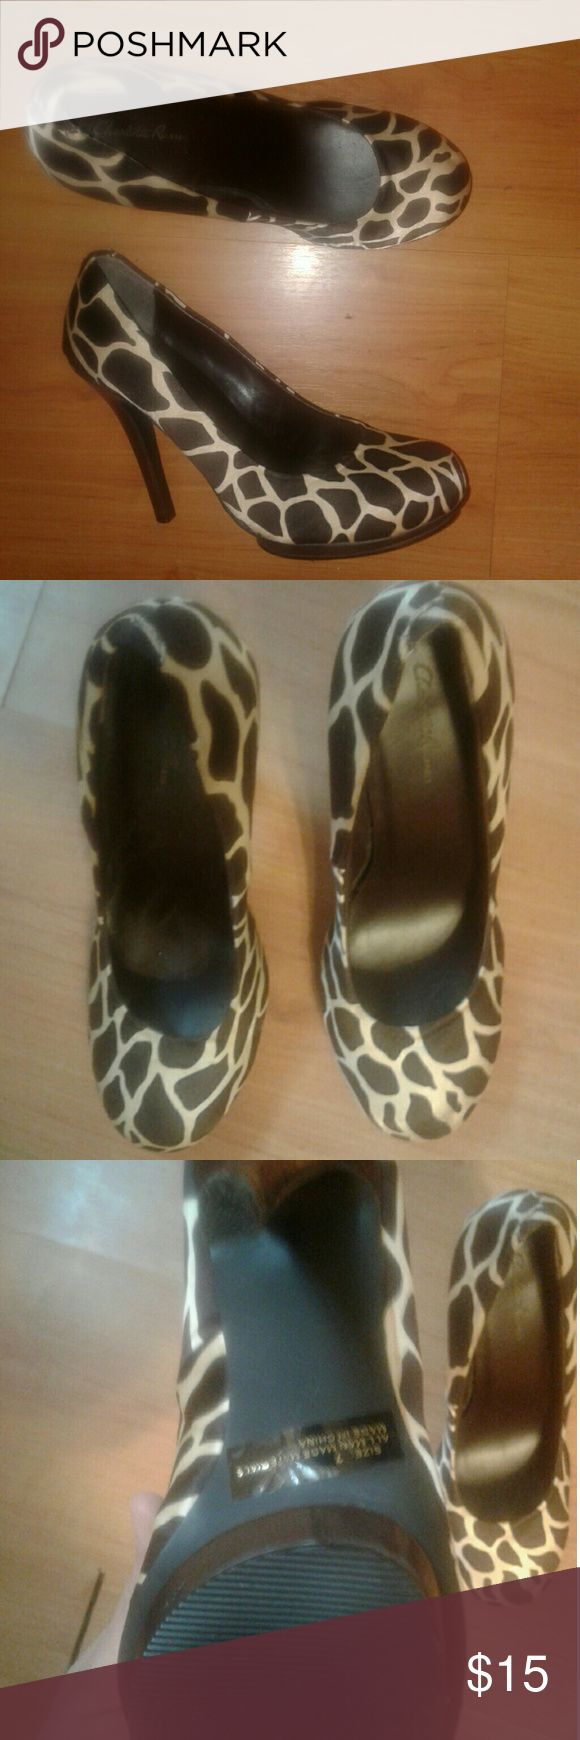 Charlotte Russe heels Charlotte Russe giraffe print heels. Heel measures 4 1/5 inches. Super pretty with a silky like material. Only wore a handful of times. Charlotte Russe Shoes Heels